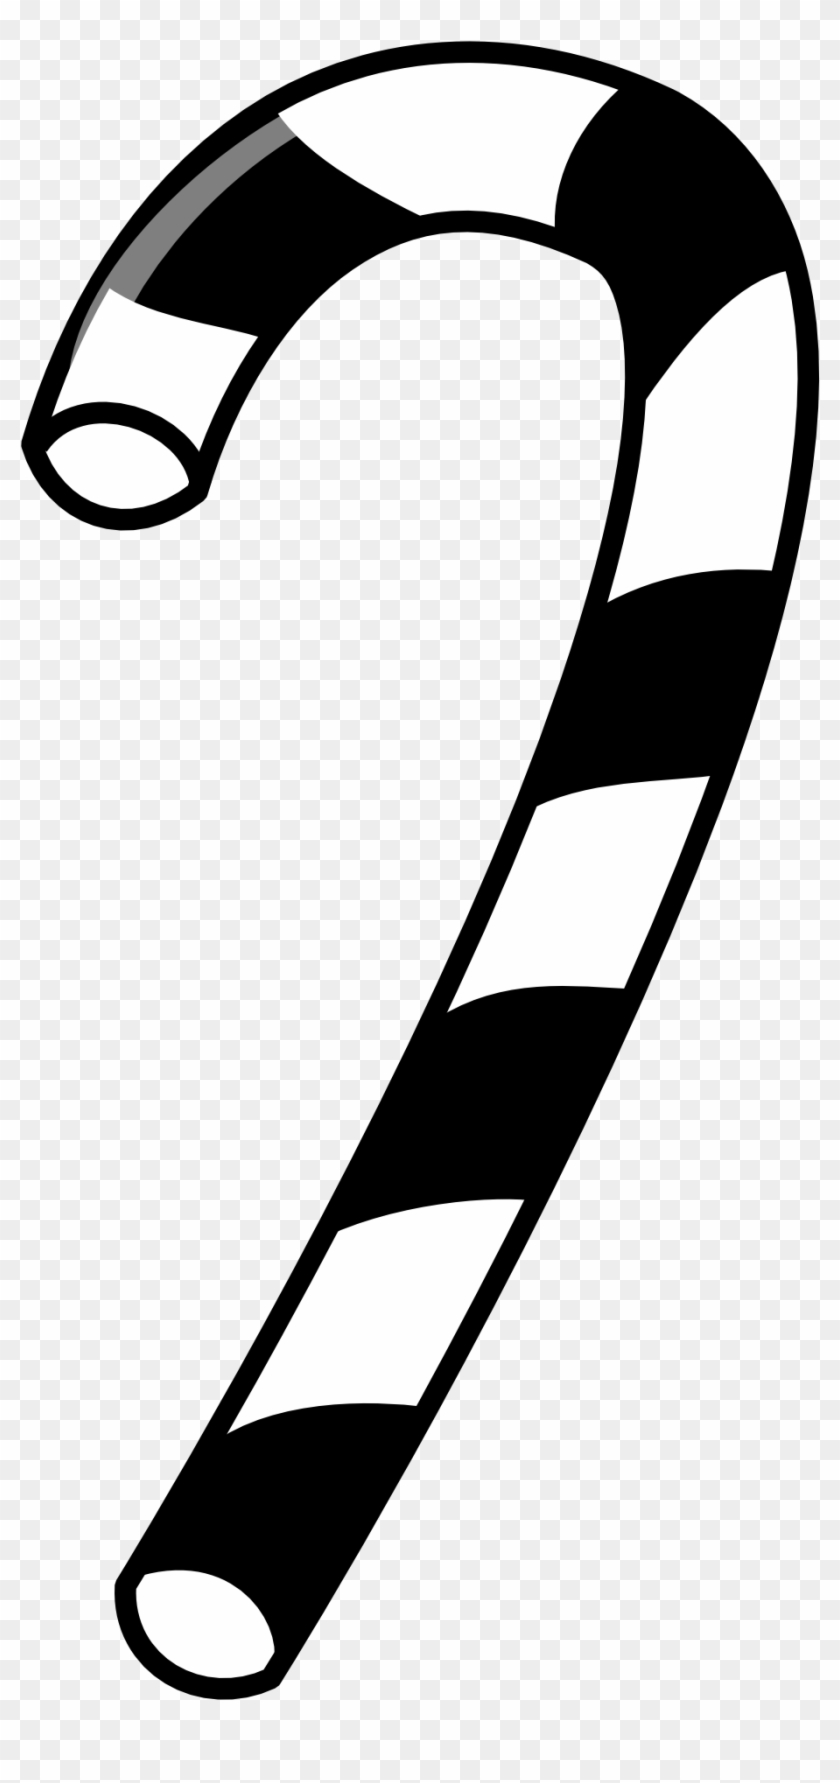 Candy Clipart Black And White - Candy Clip Art #171030